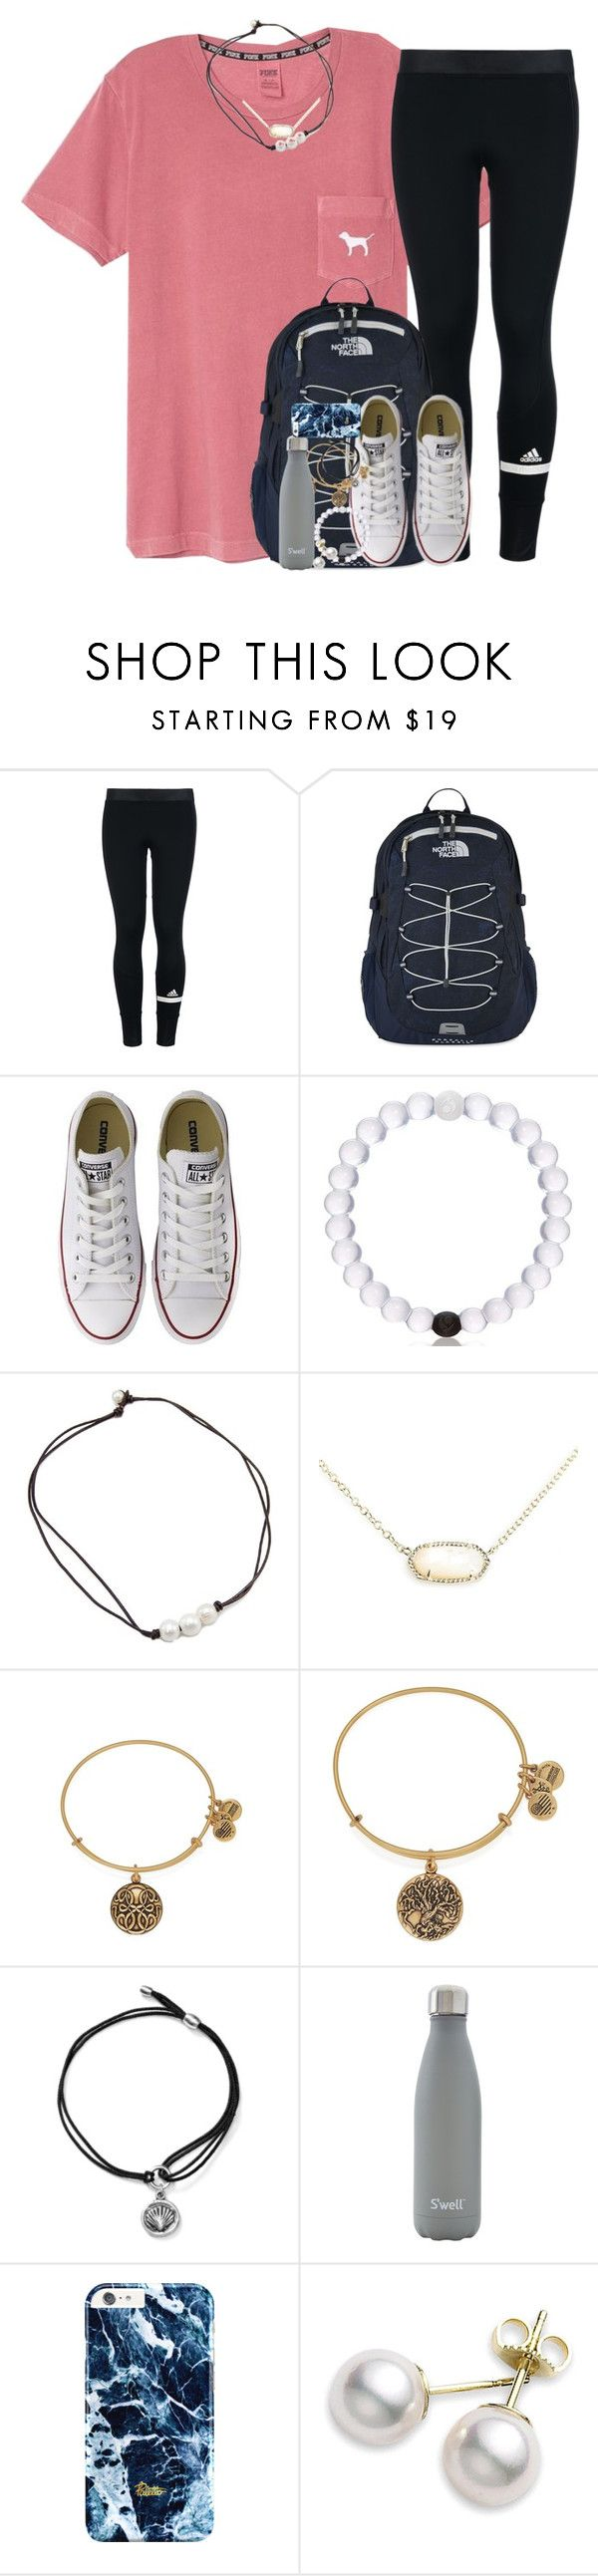 """""""i have soo many cute fall drafts to post"""" by kate-elizabethh ❤ liked on Polyvore featuring adidas, The North Face, Converse, Kendra Scott, Alex and Ani, S'well and Mikimoto"""